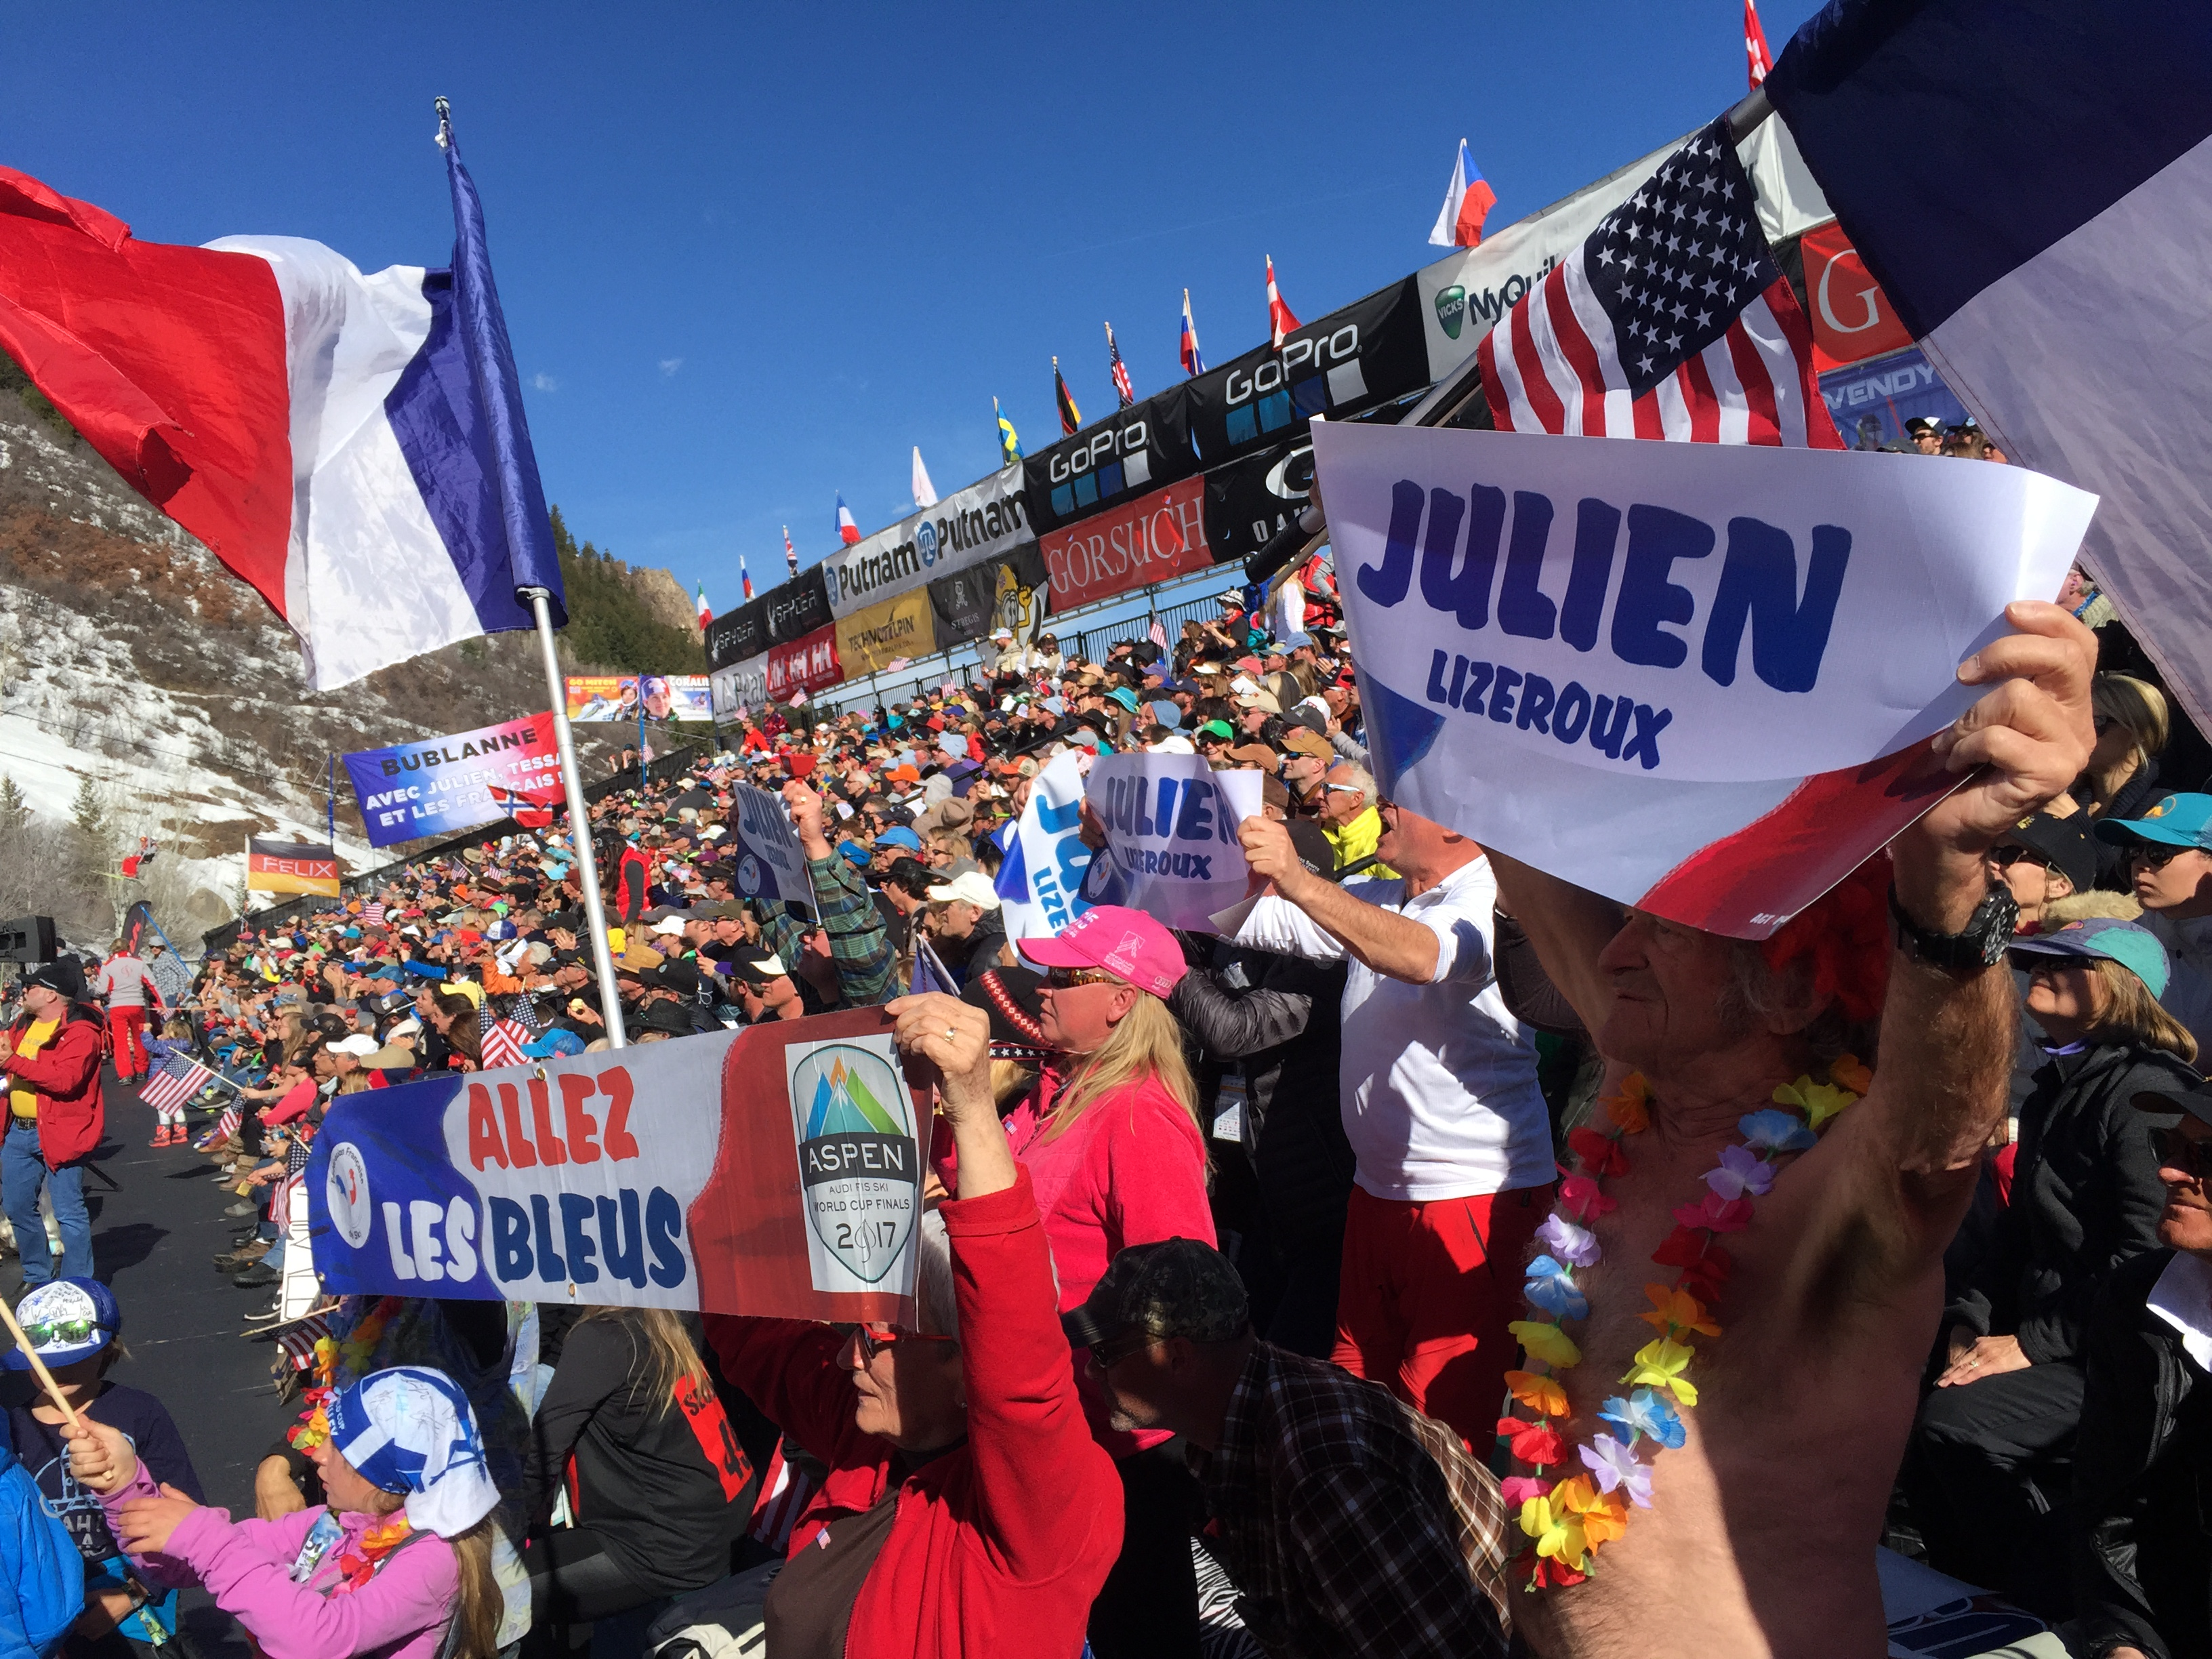 Julien Lizeroux fans at Aspen Ski World Cup Finals 2017